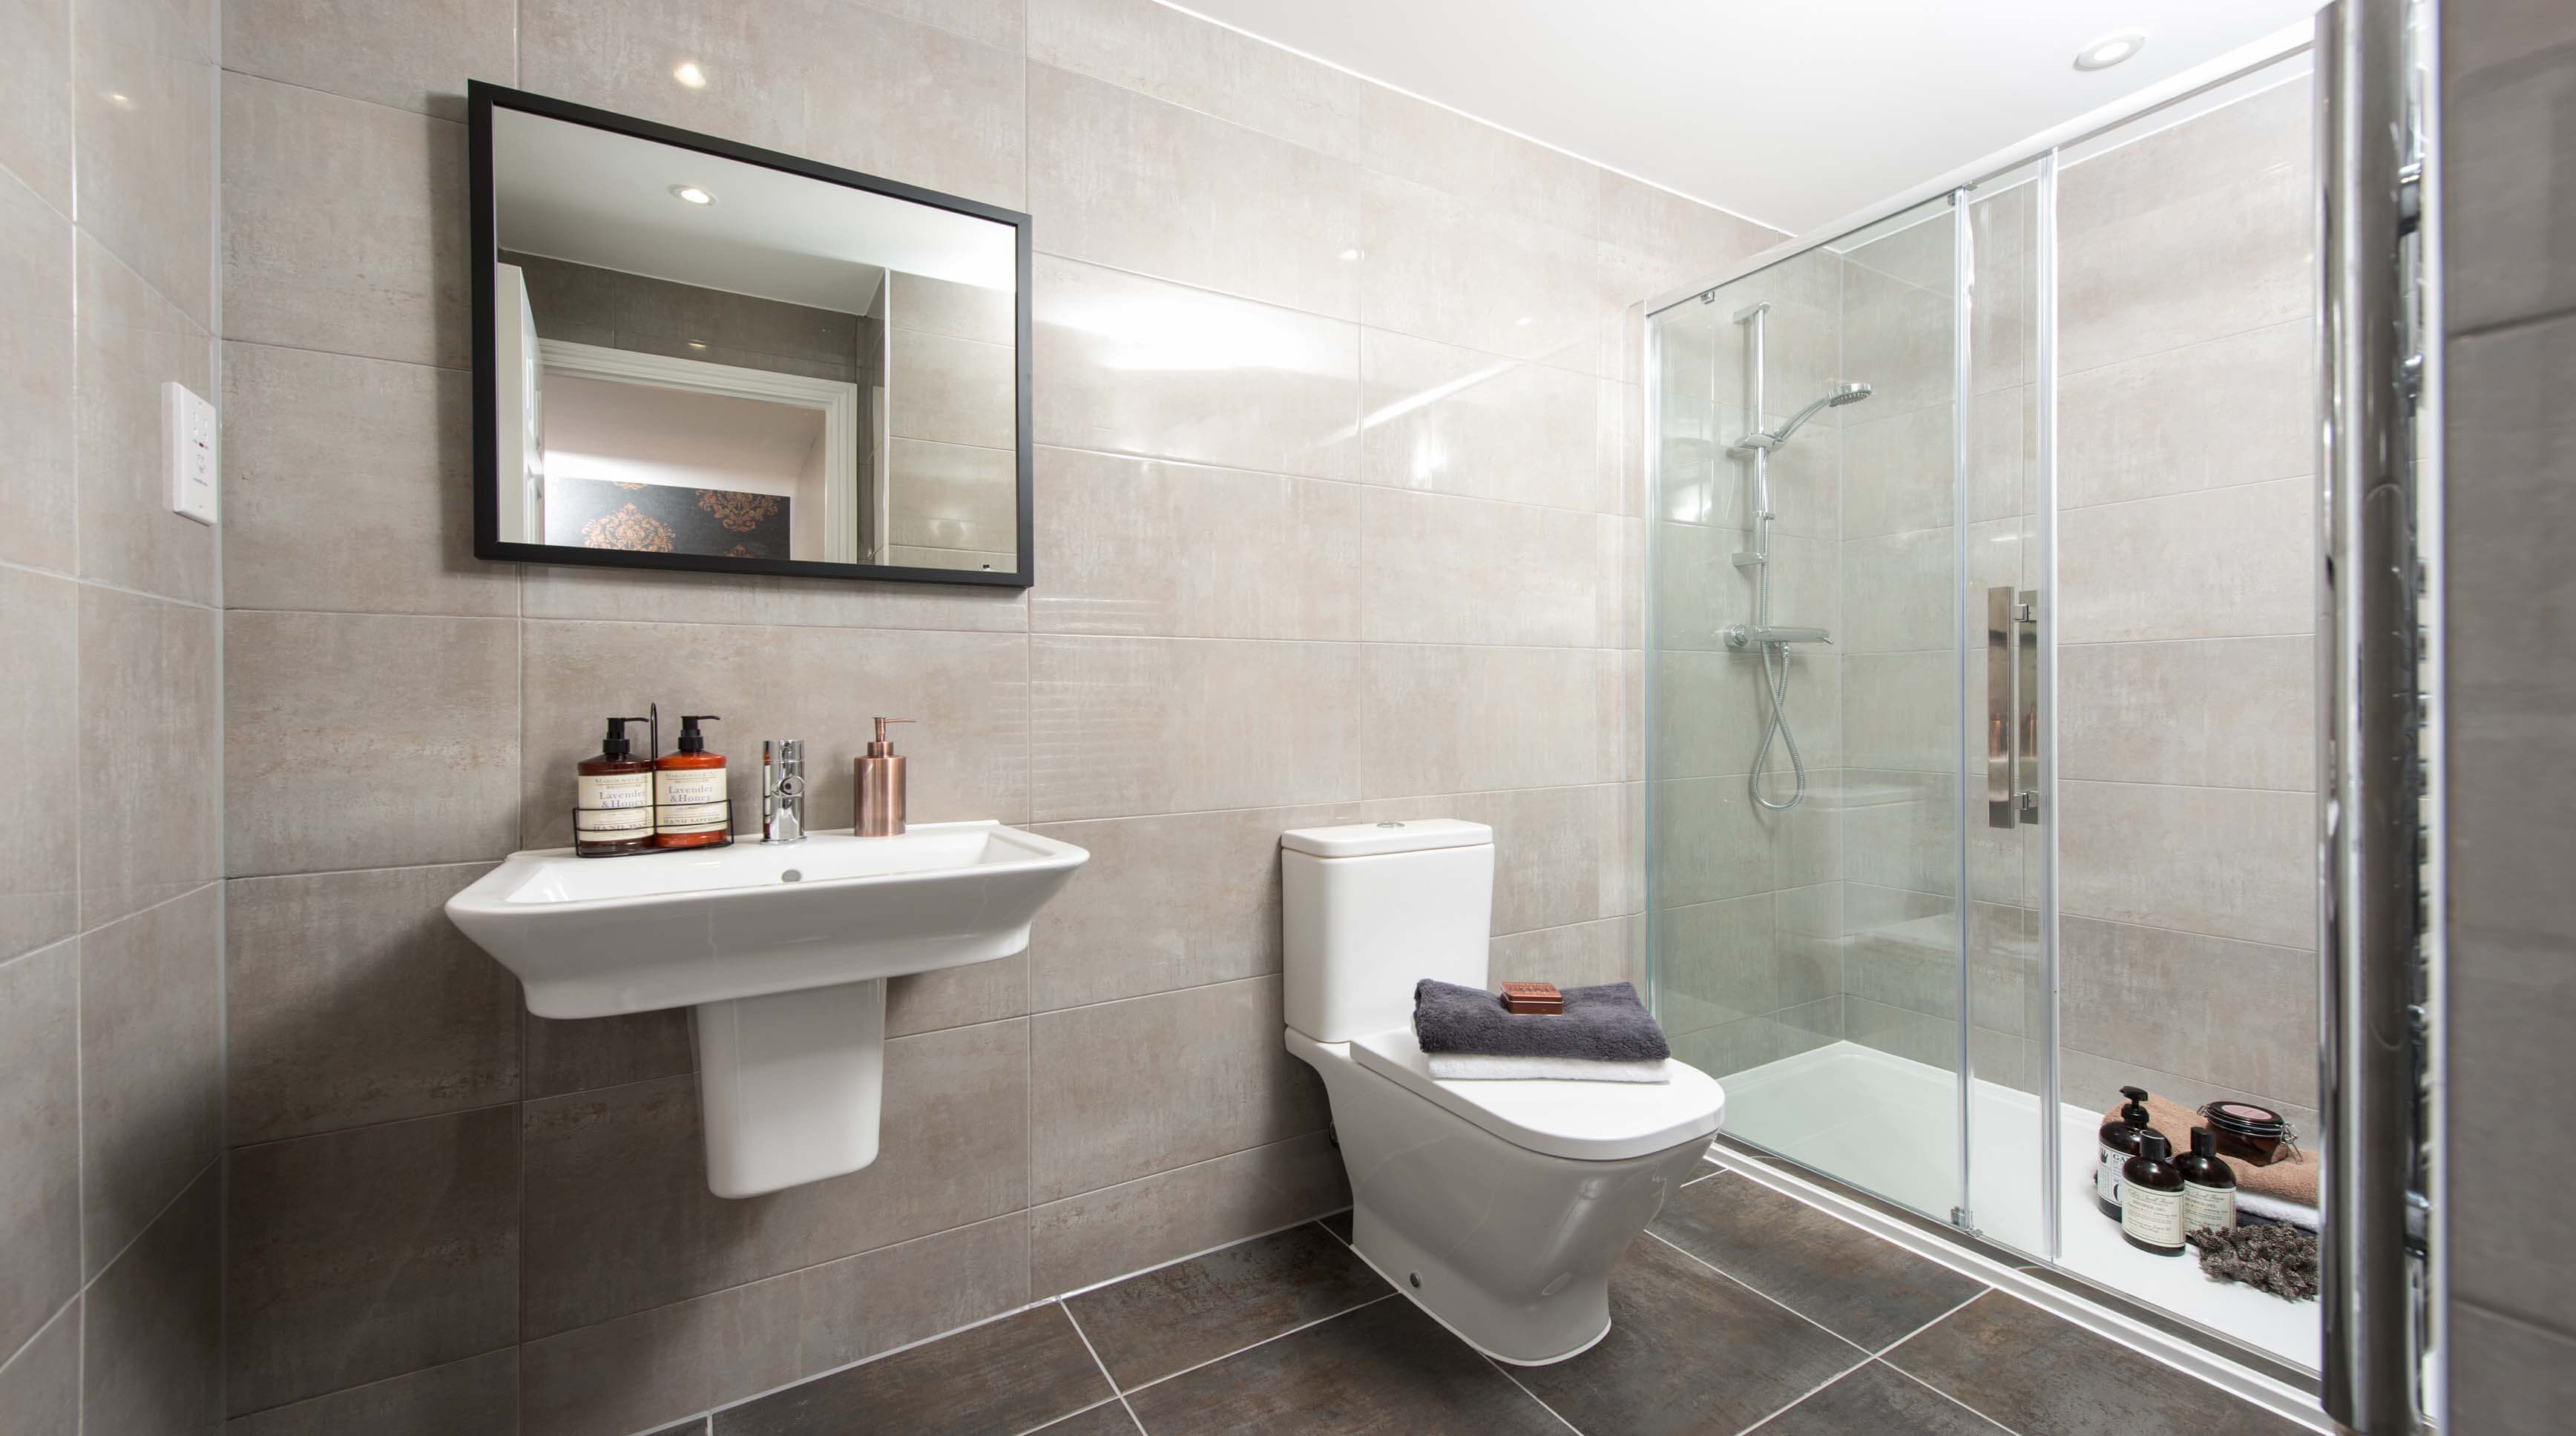 The Basswood ensuite bathroom